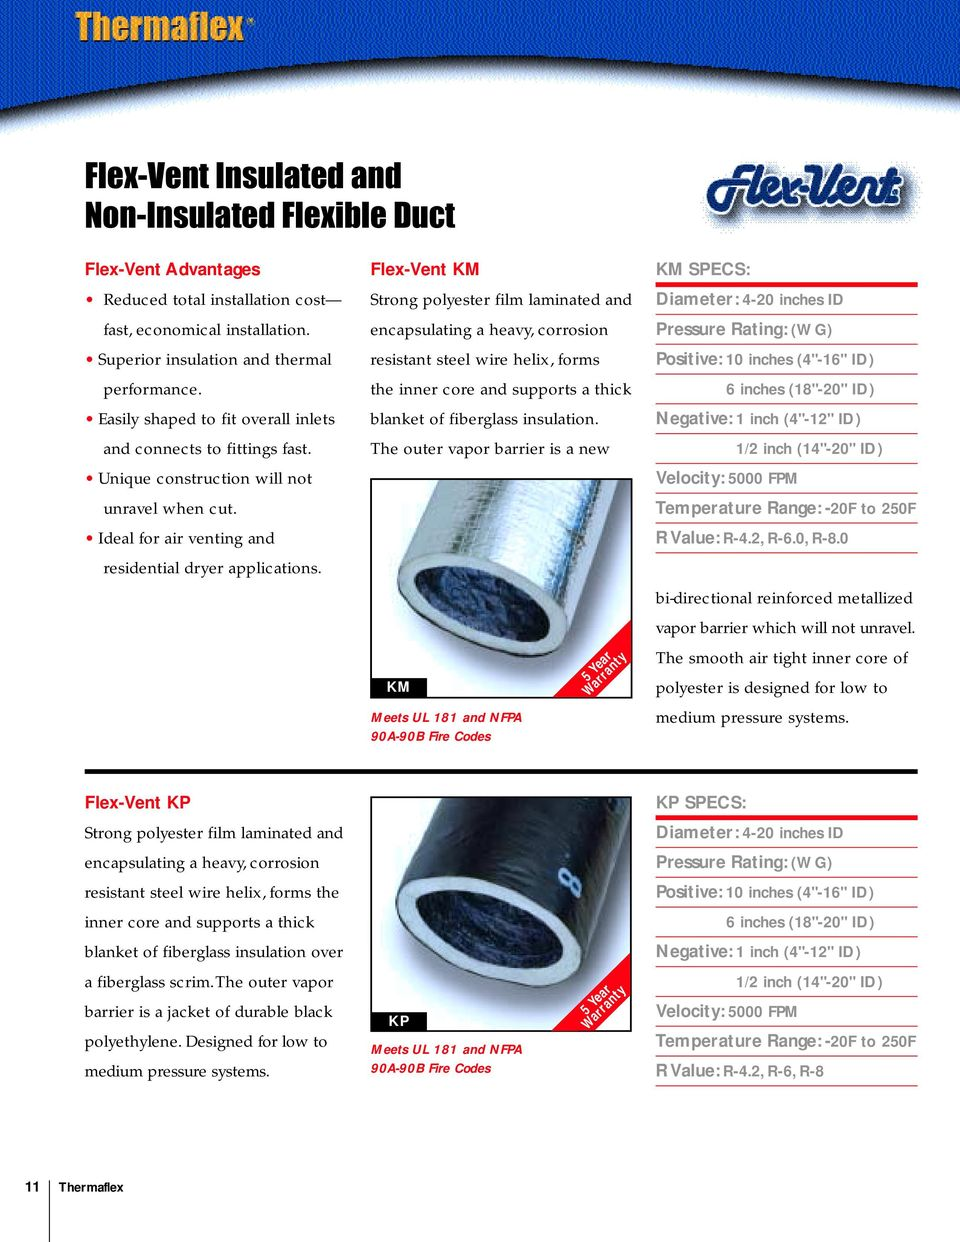 Thermaflex  The Contractors' Choice in Flexible Duct for